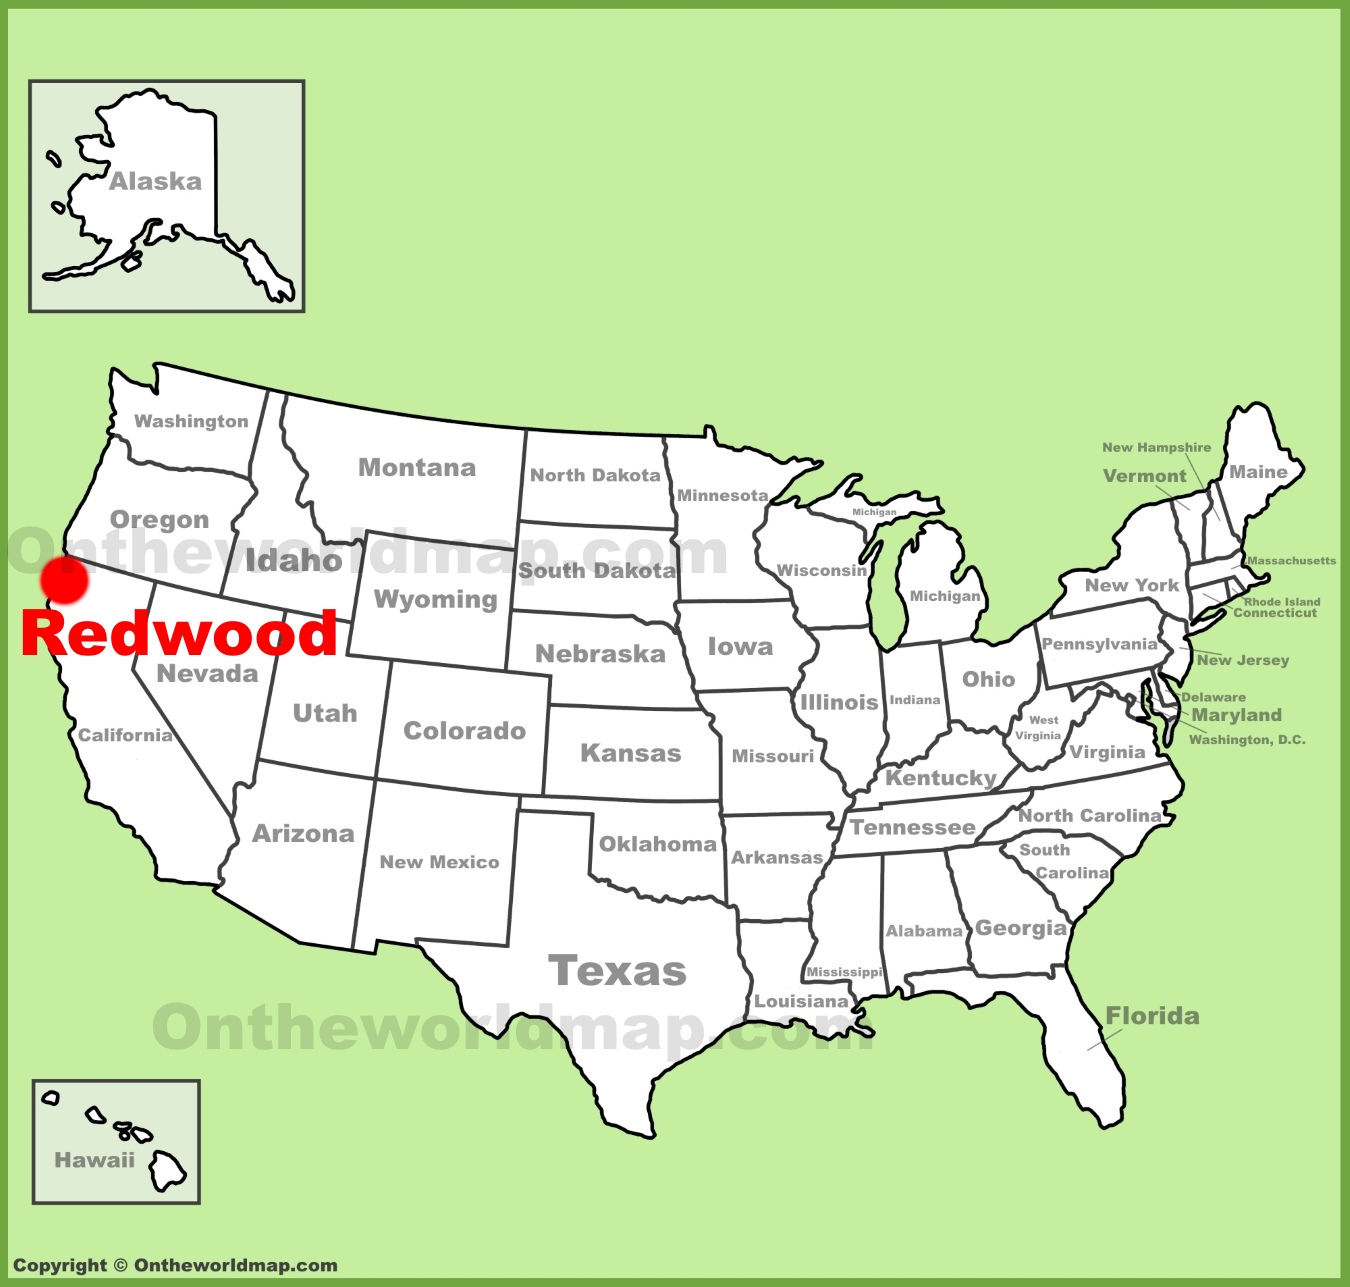 Redwood National Park location on the US Map